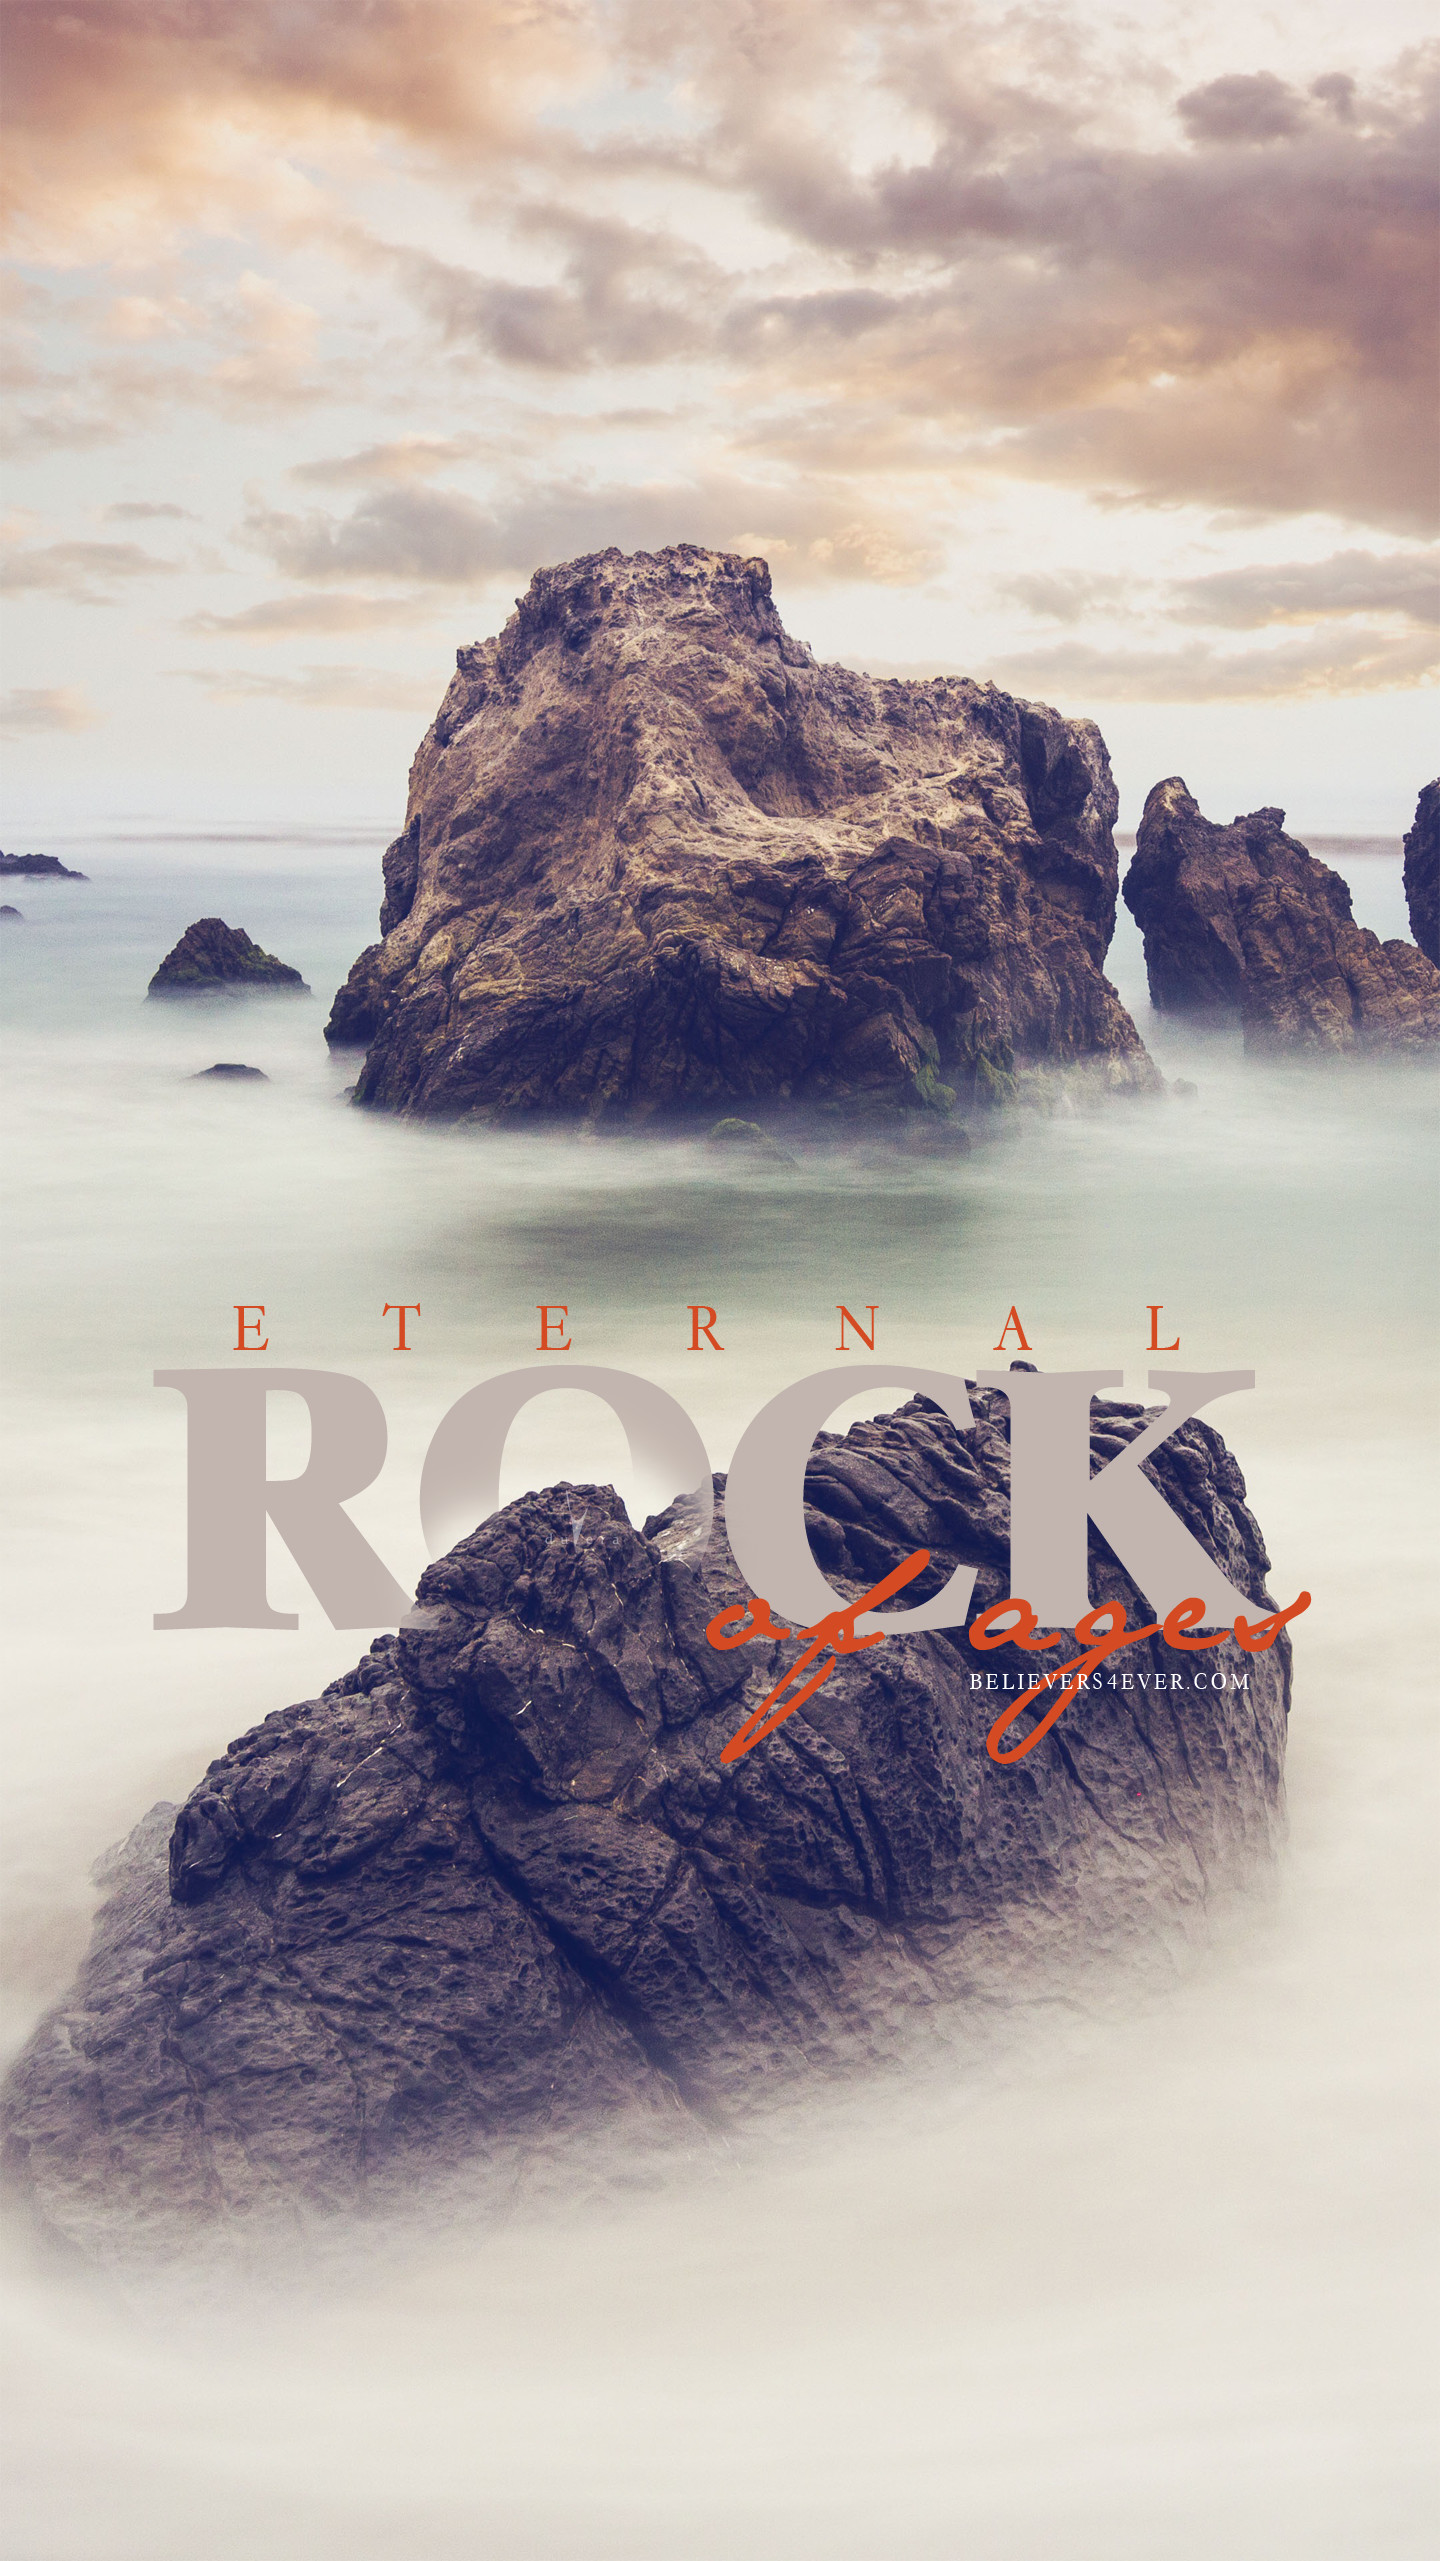 Eternal rock of ages #Christian mobile #phone #wallpaper for android  devices, ipnone